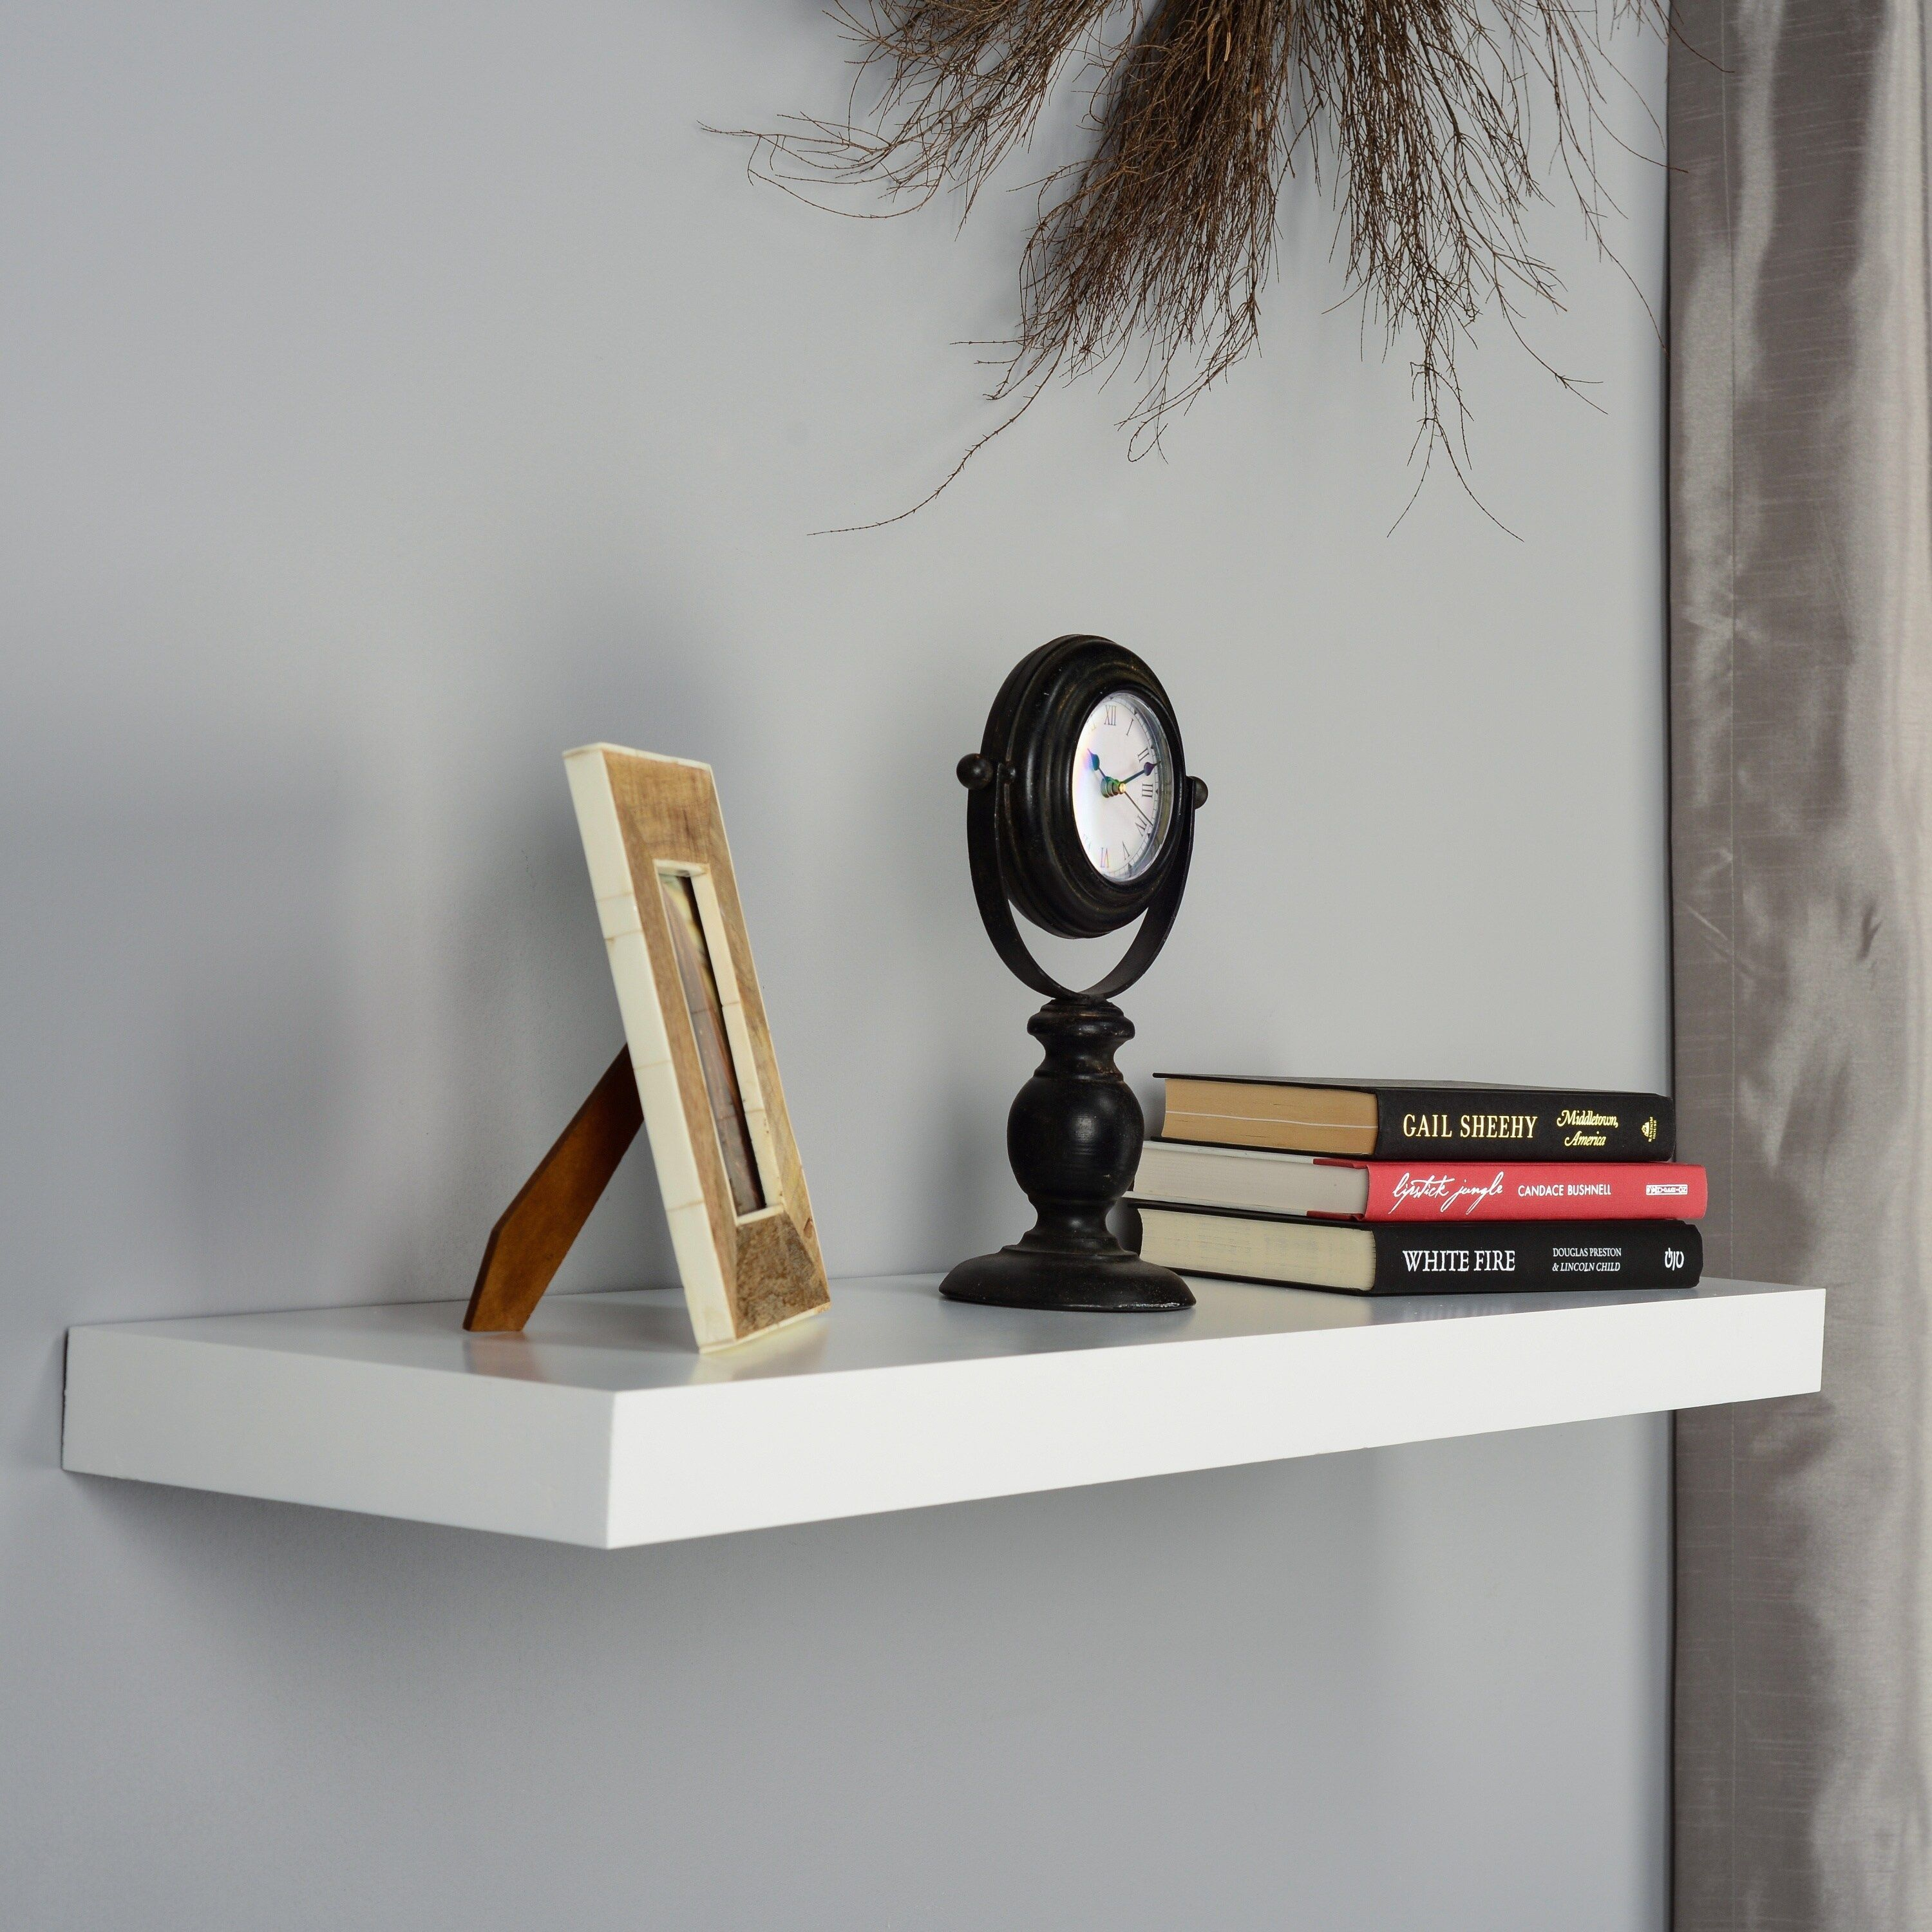 Harper Blvd Tampa 36 Inch White Floating Shelf As Is Item Os3637en White Floating Shelves Floating Shelves Floating Shelves With Lights